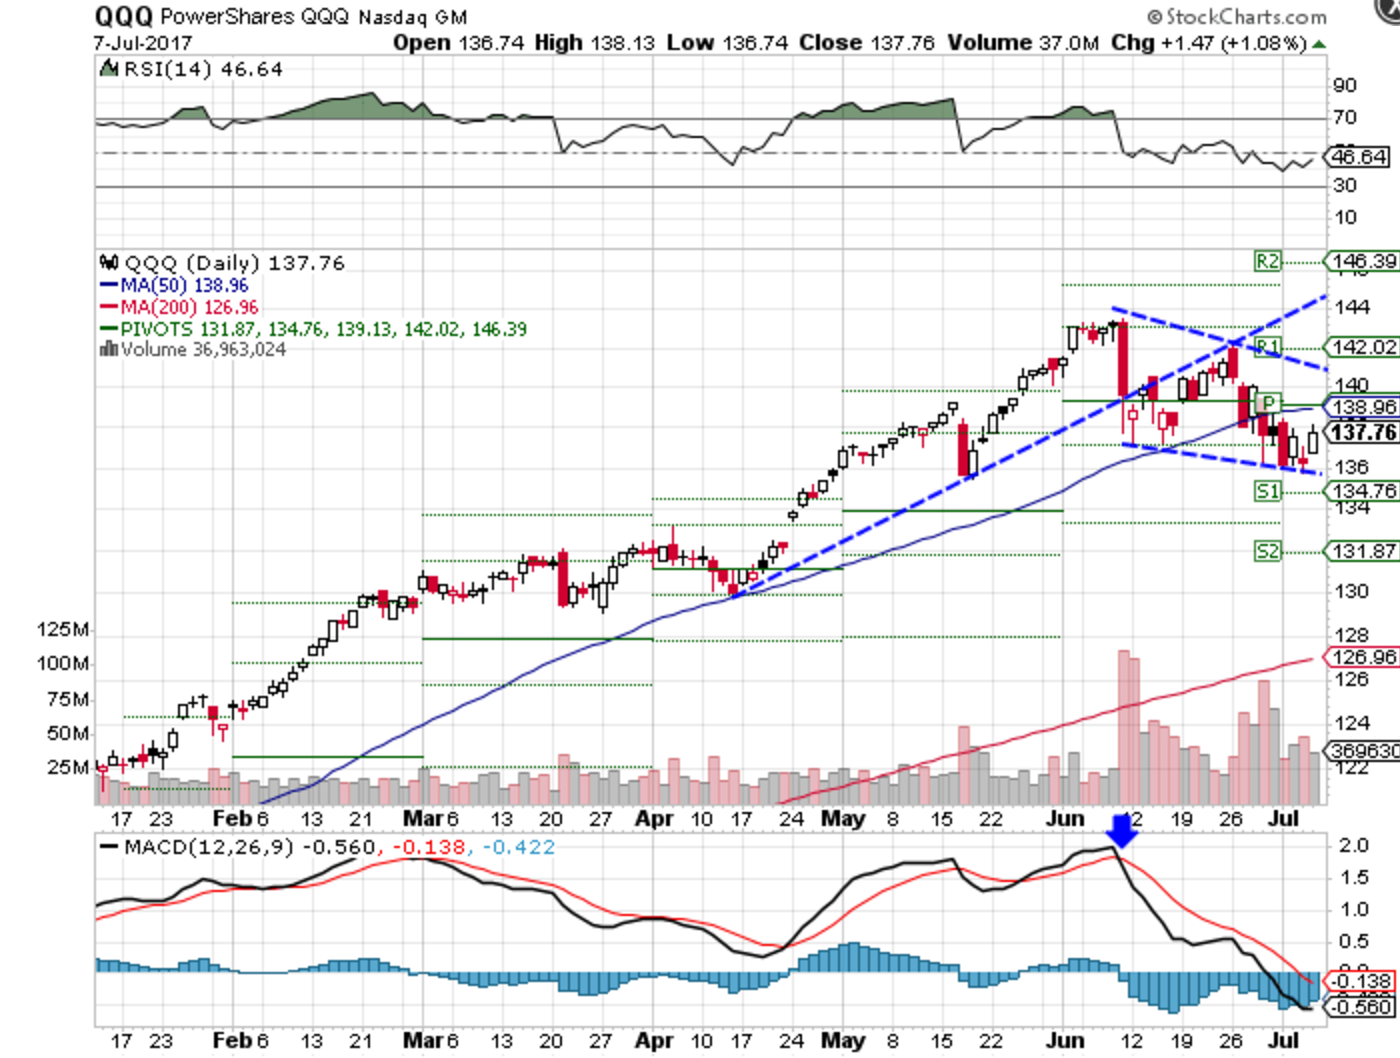 Technical chart showing the year-to-date performance of the PowerShares QQQ Trust (QQQ)